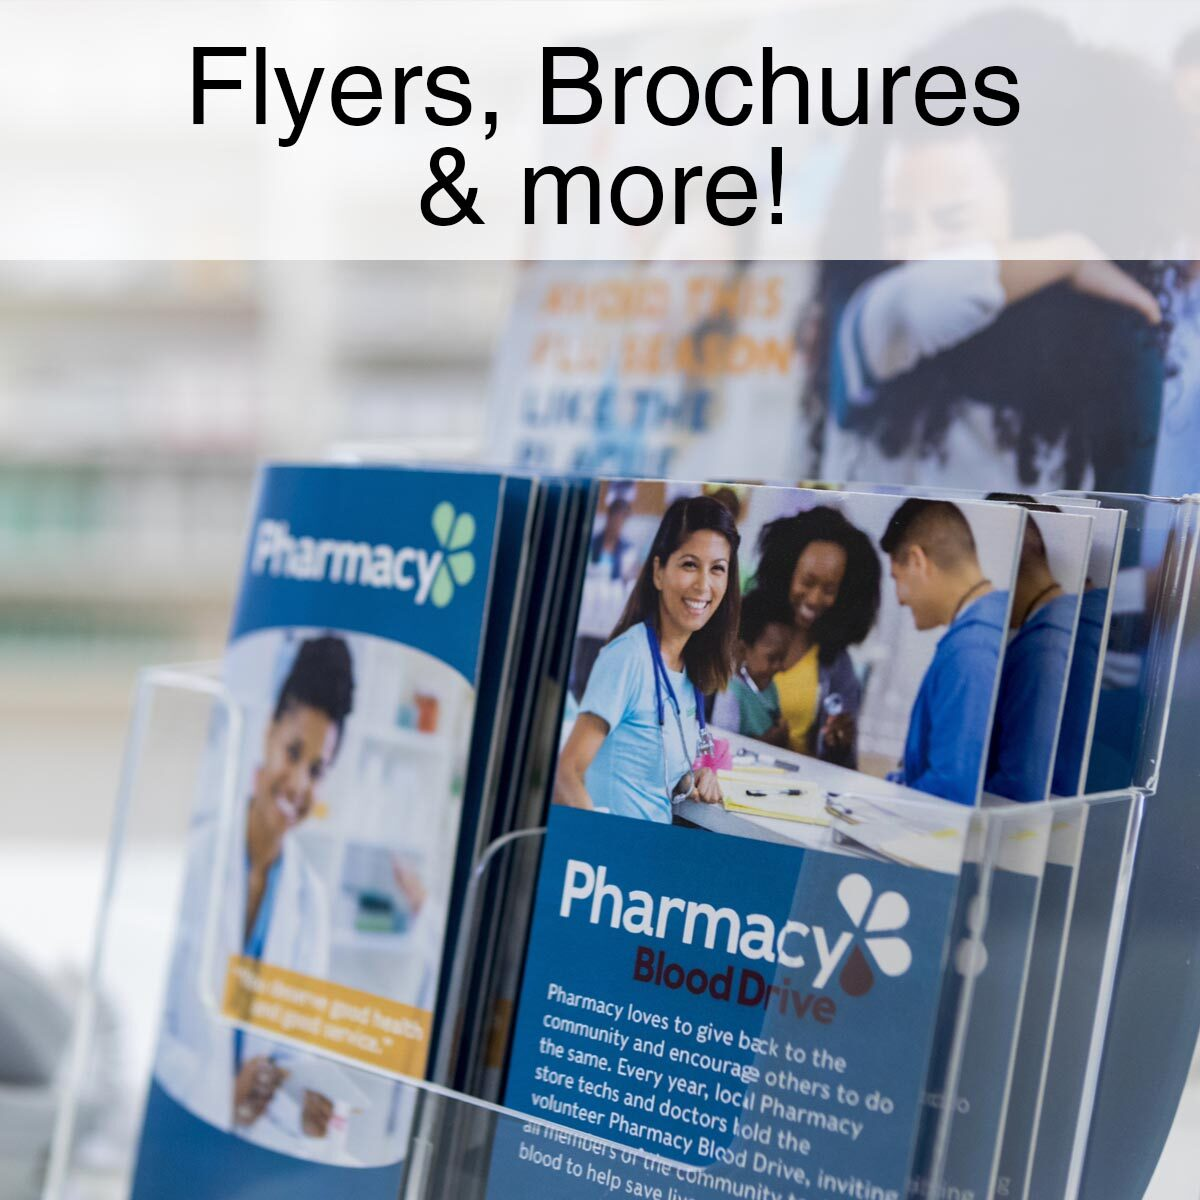 web_printed_materials_Flyers